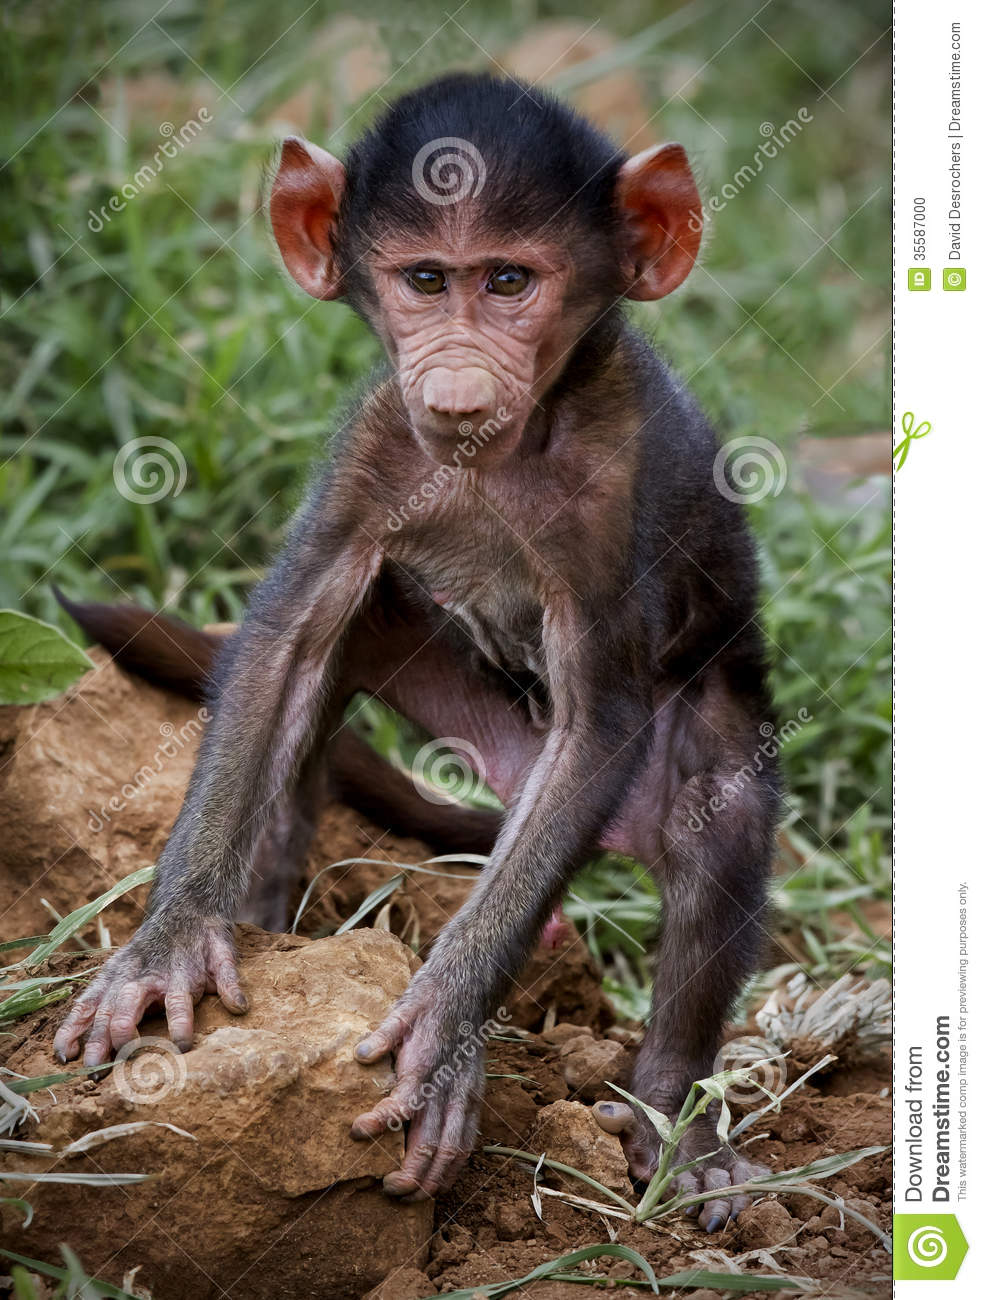 African Baby Baboon Images & Pictures - Becuo